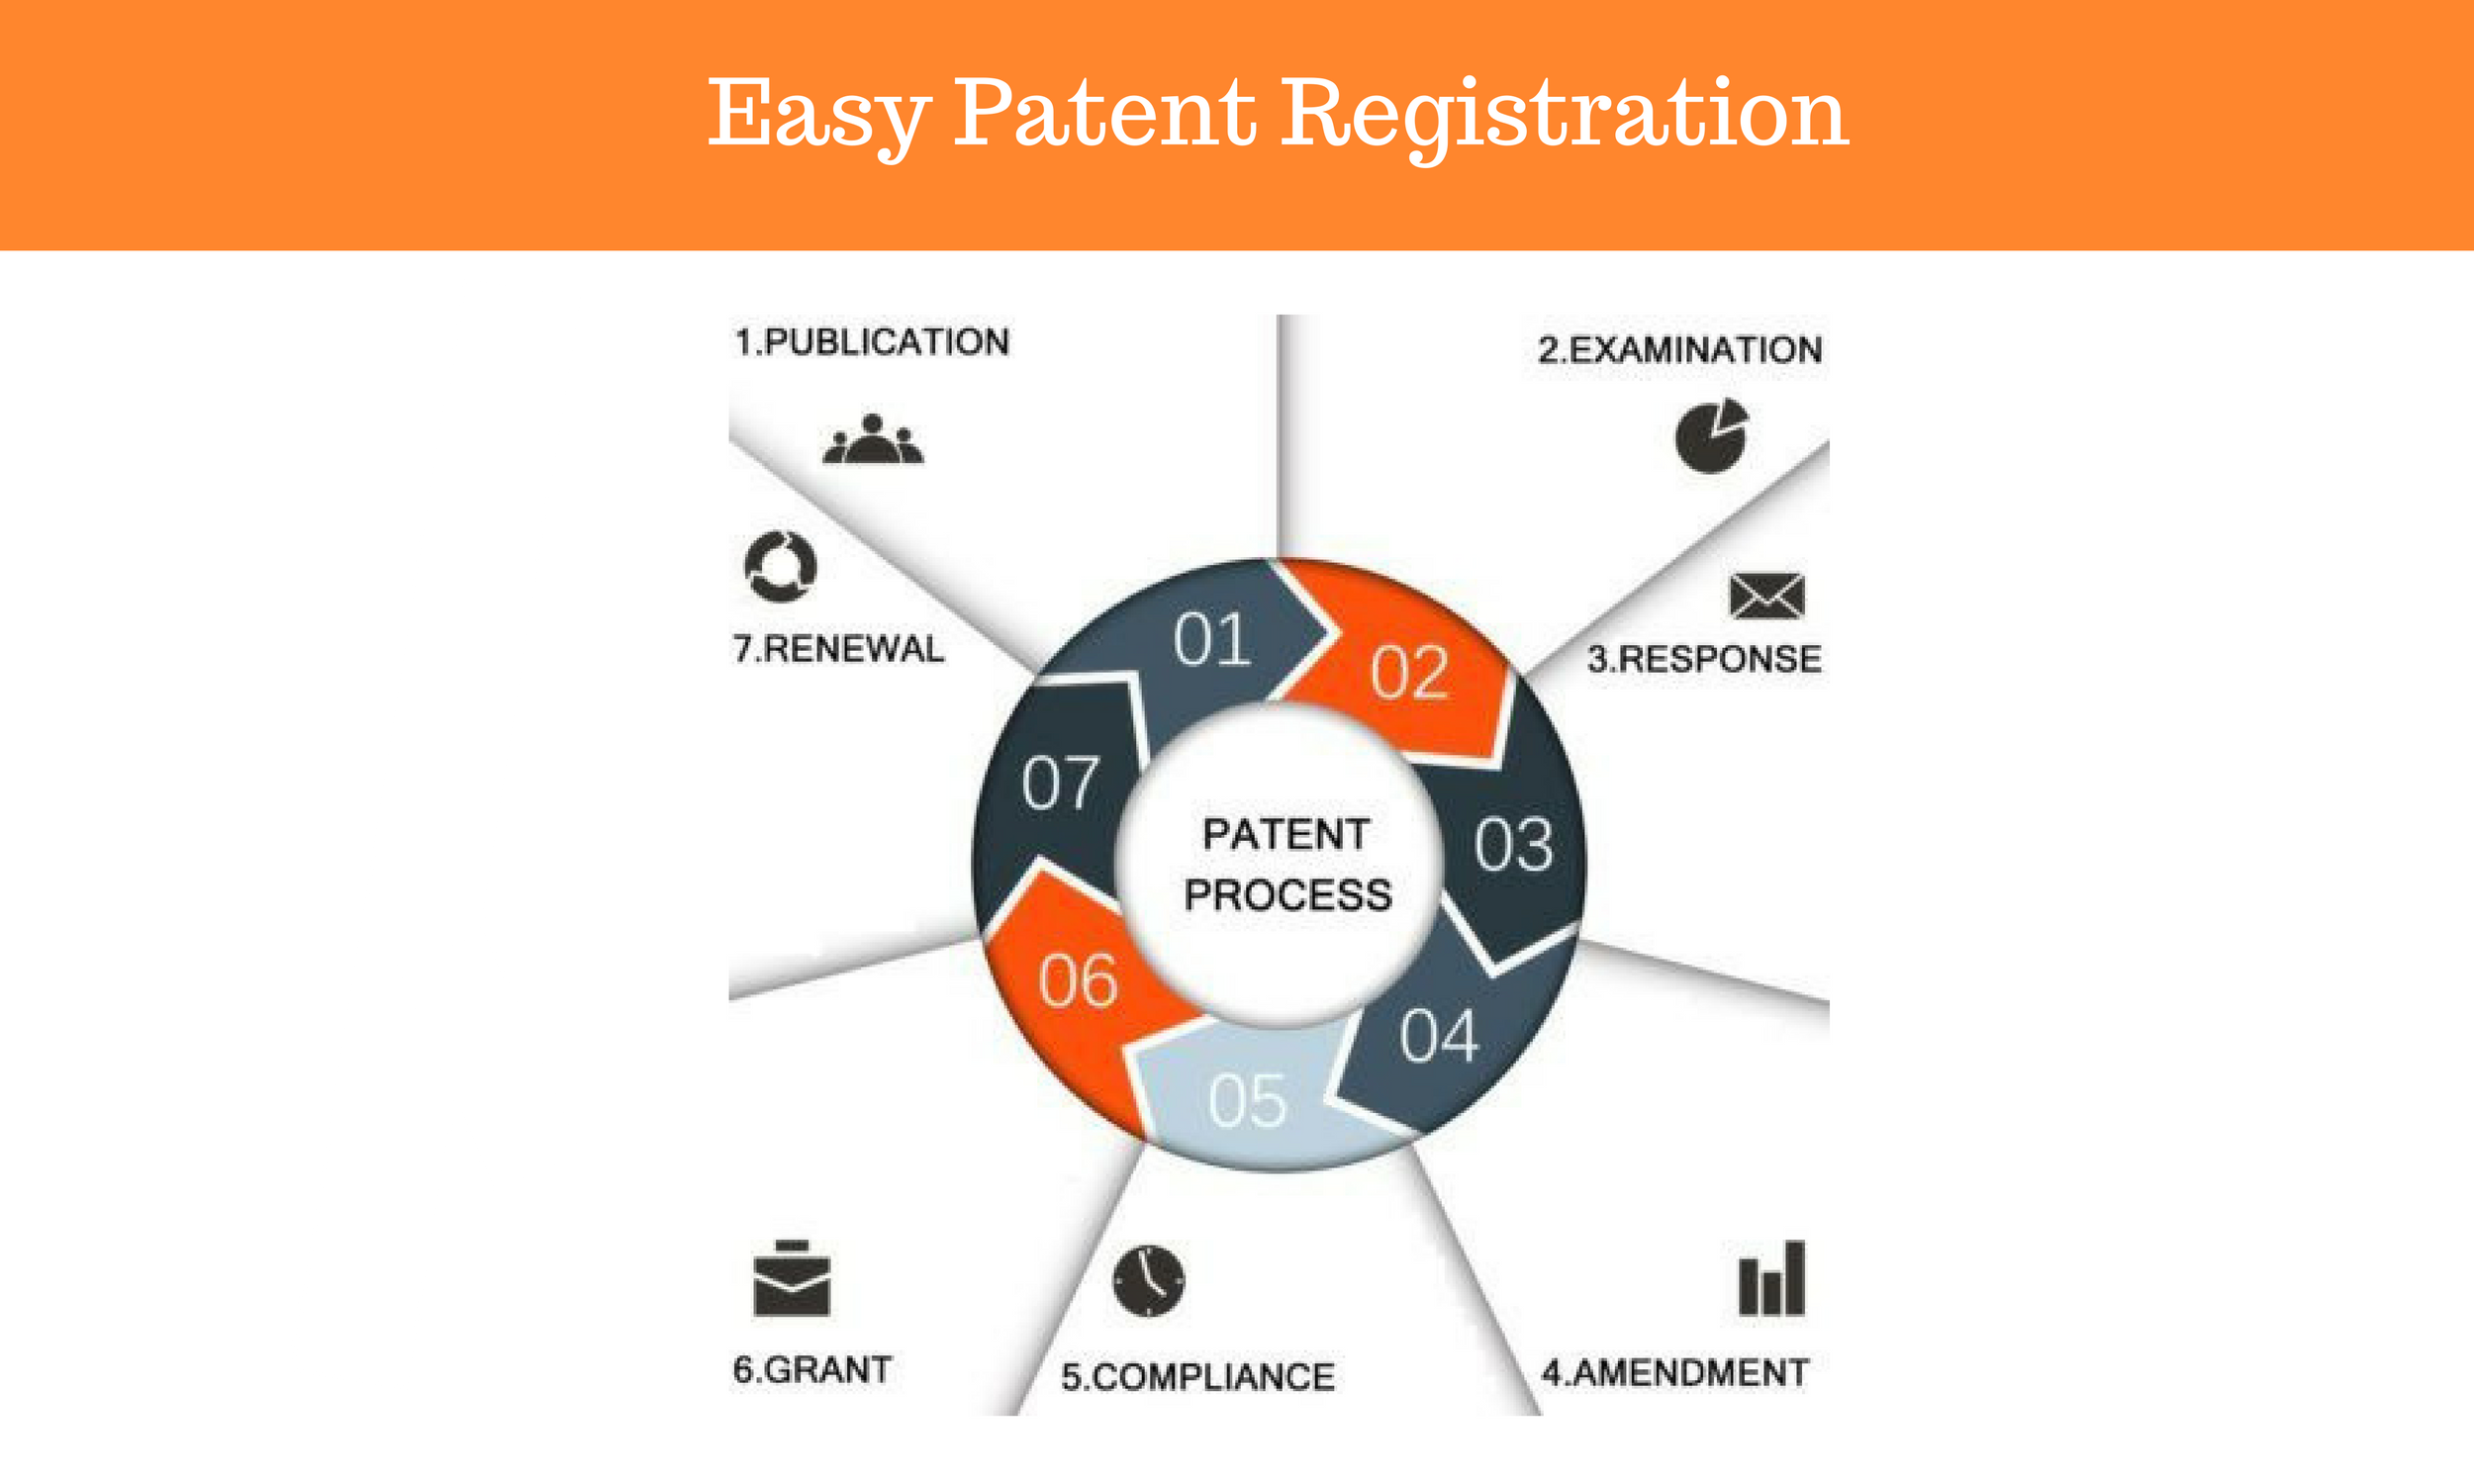 Easy PATENT Registration